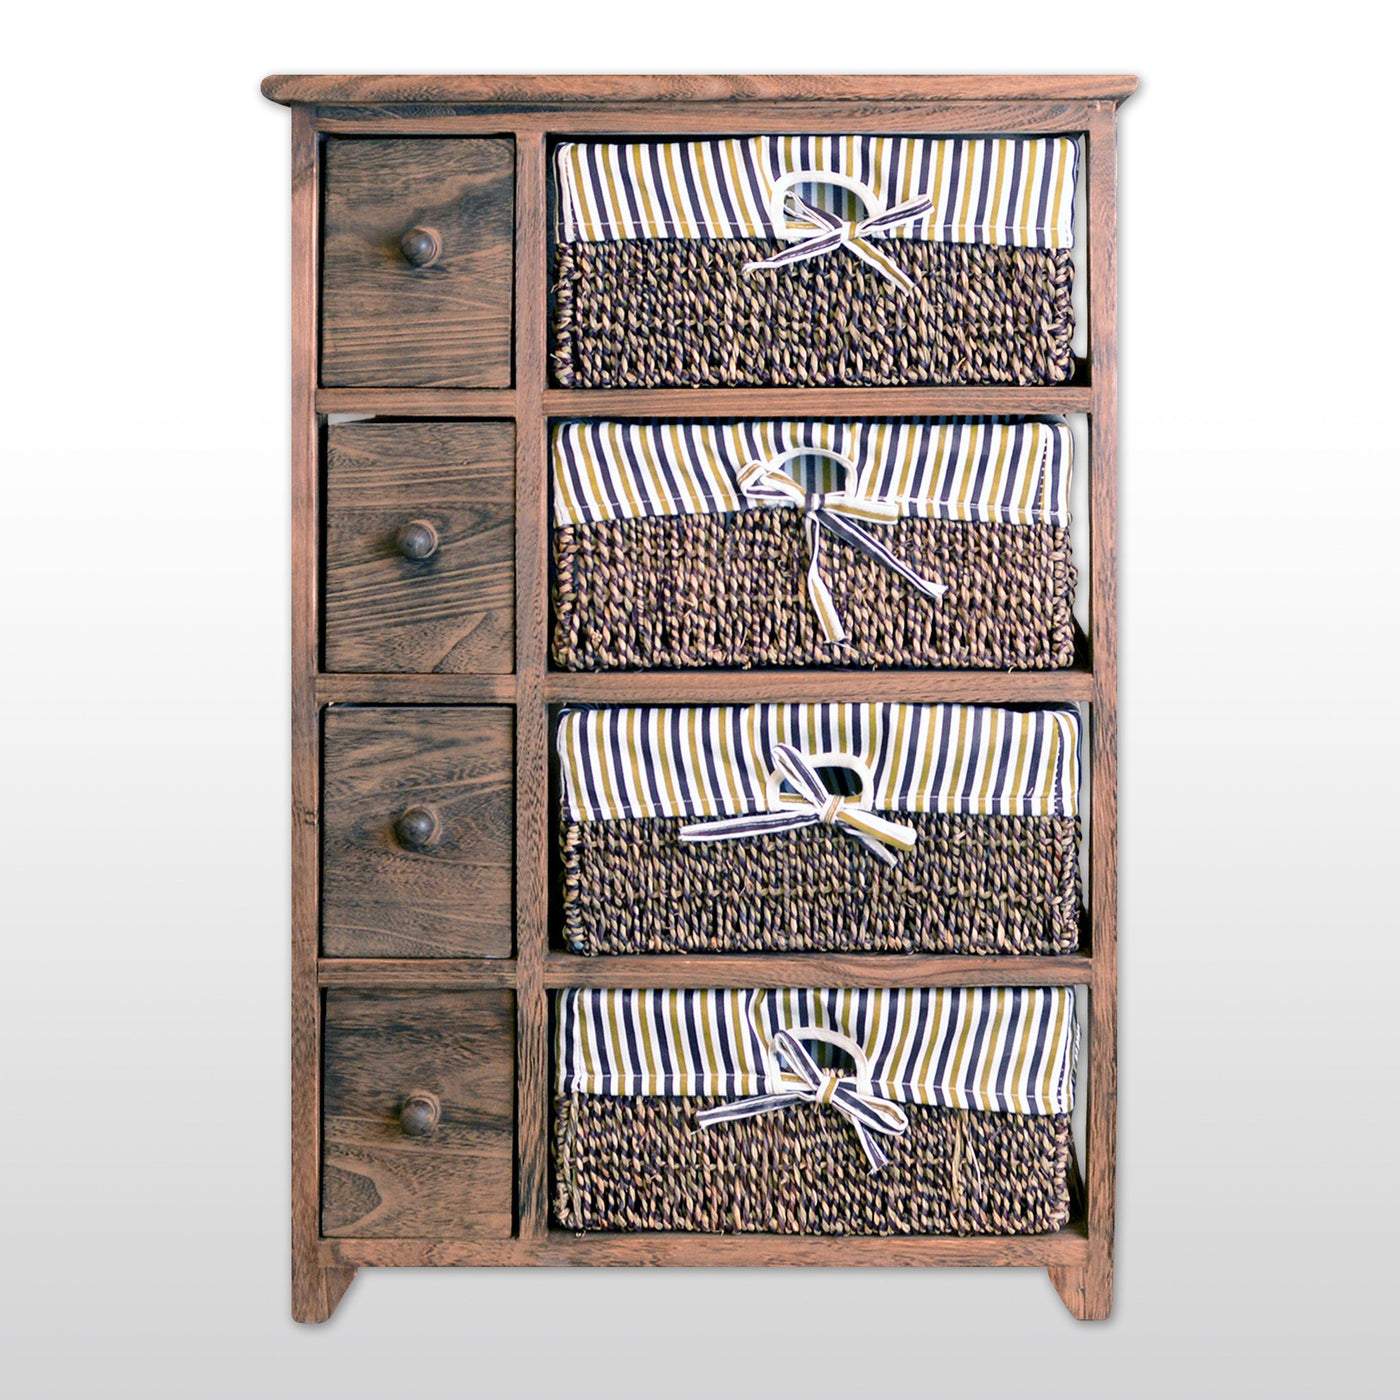 Storage Cabinet With 4 Drawers 4 Wicker Baskets 29 Tall In Antique Walnut Finish